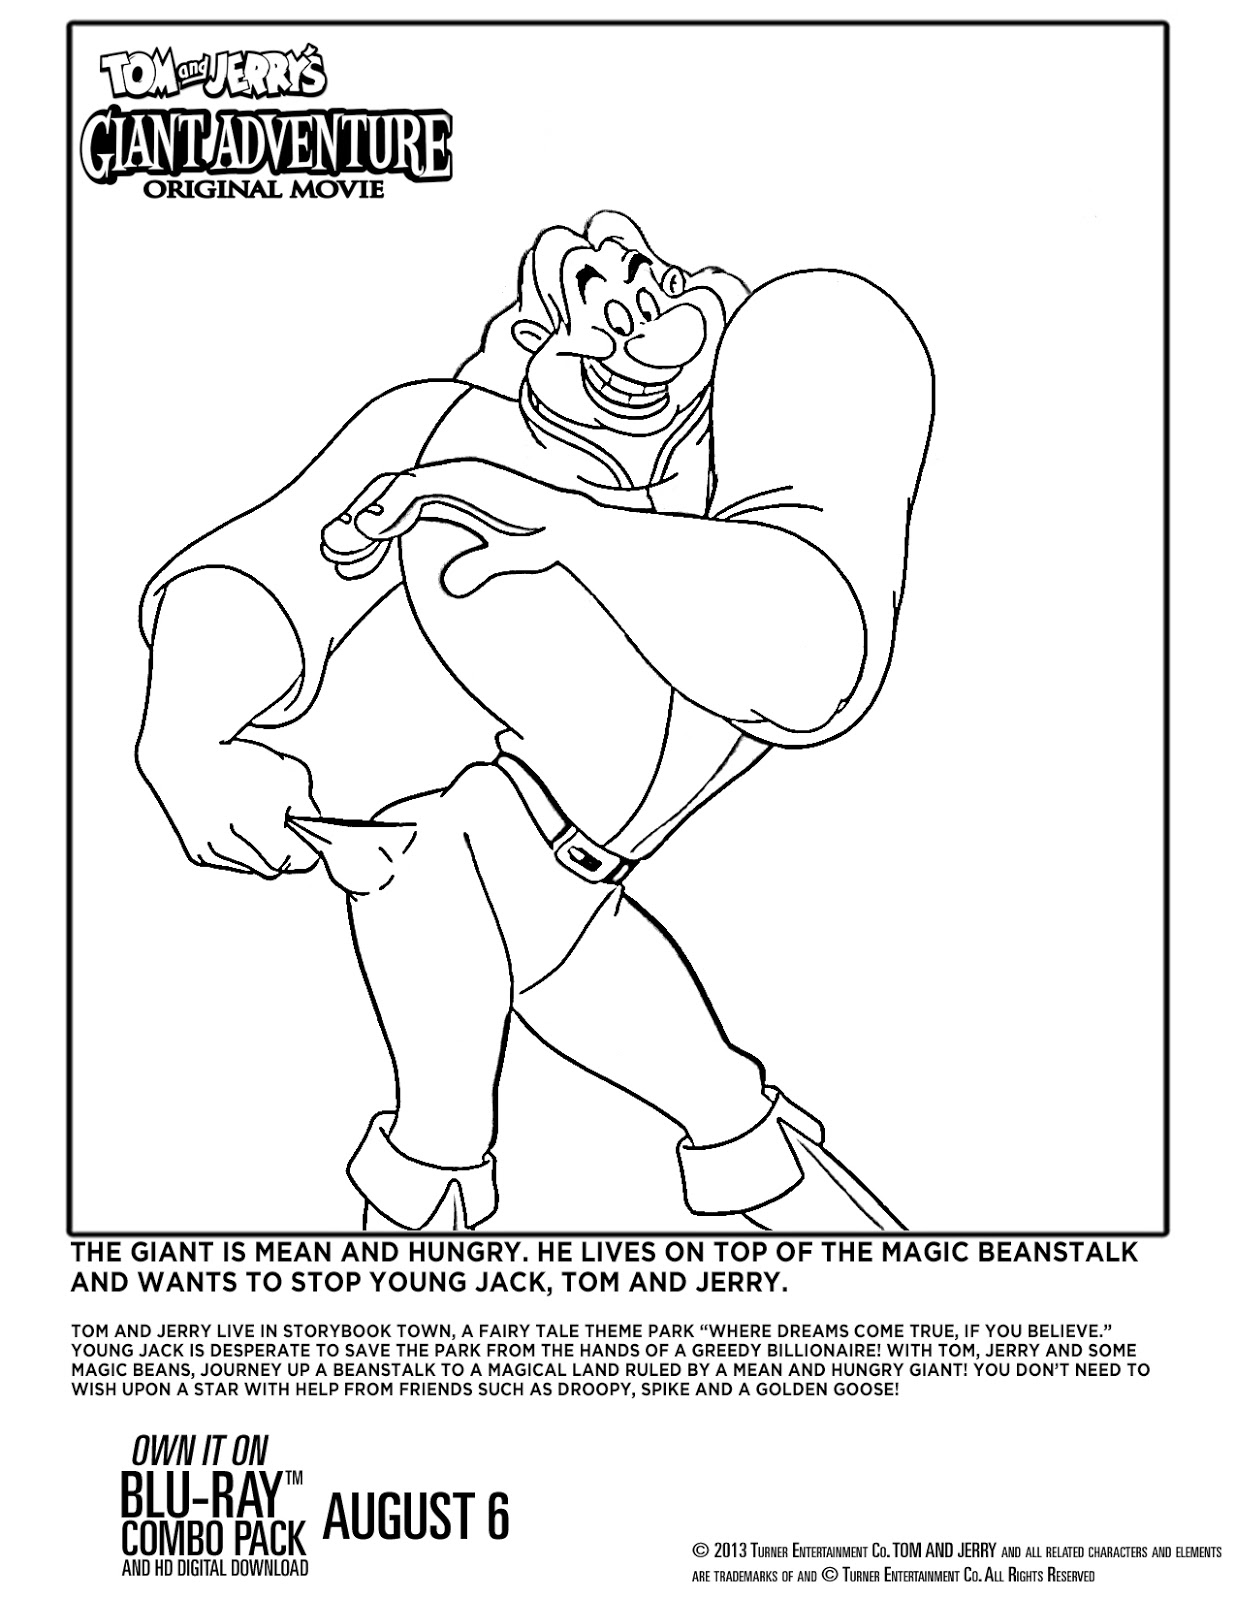 Tom and Jerry's Giant Adventure coloring sheet 4